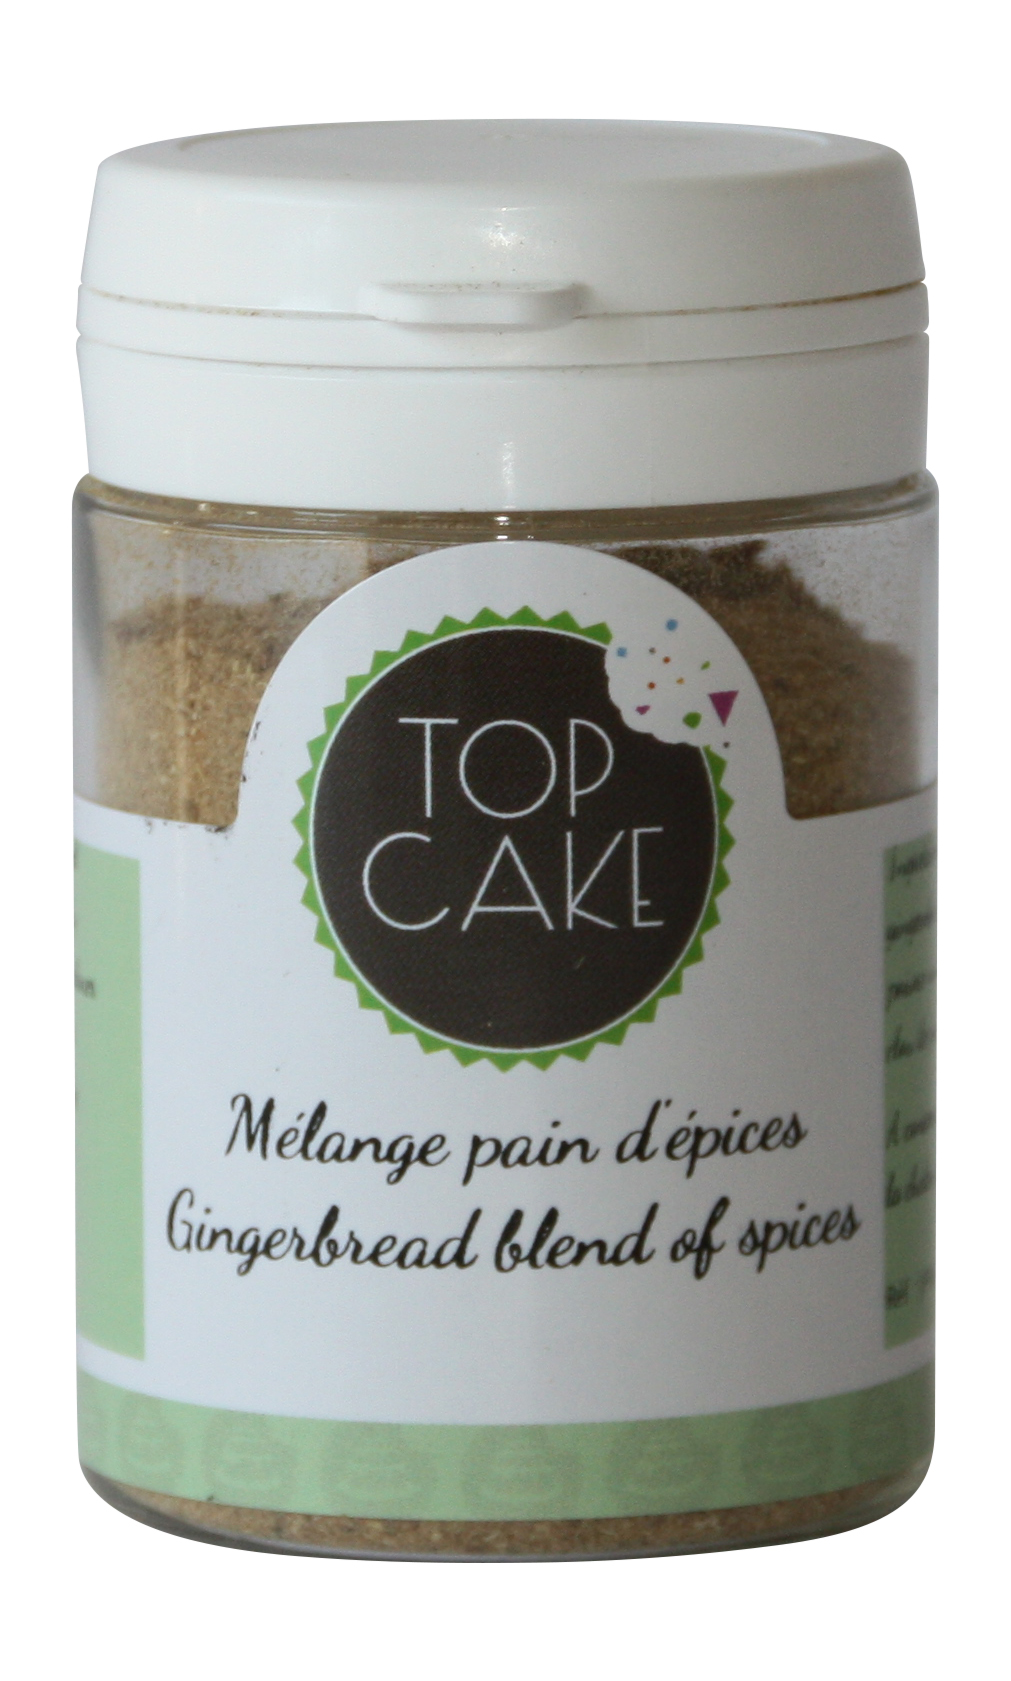 TopCake - Gingerbread blend of spices